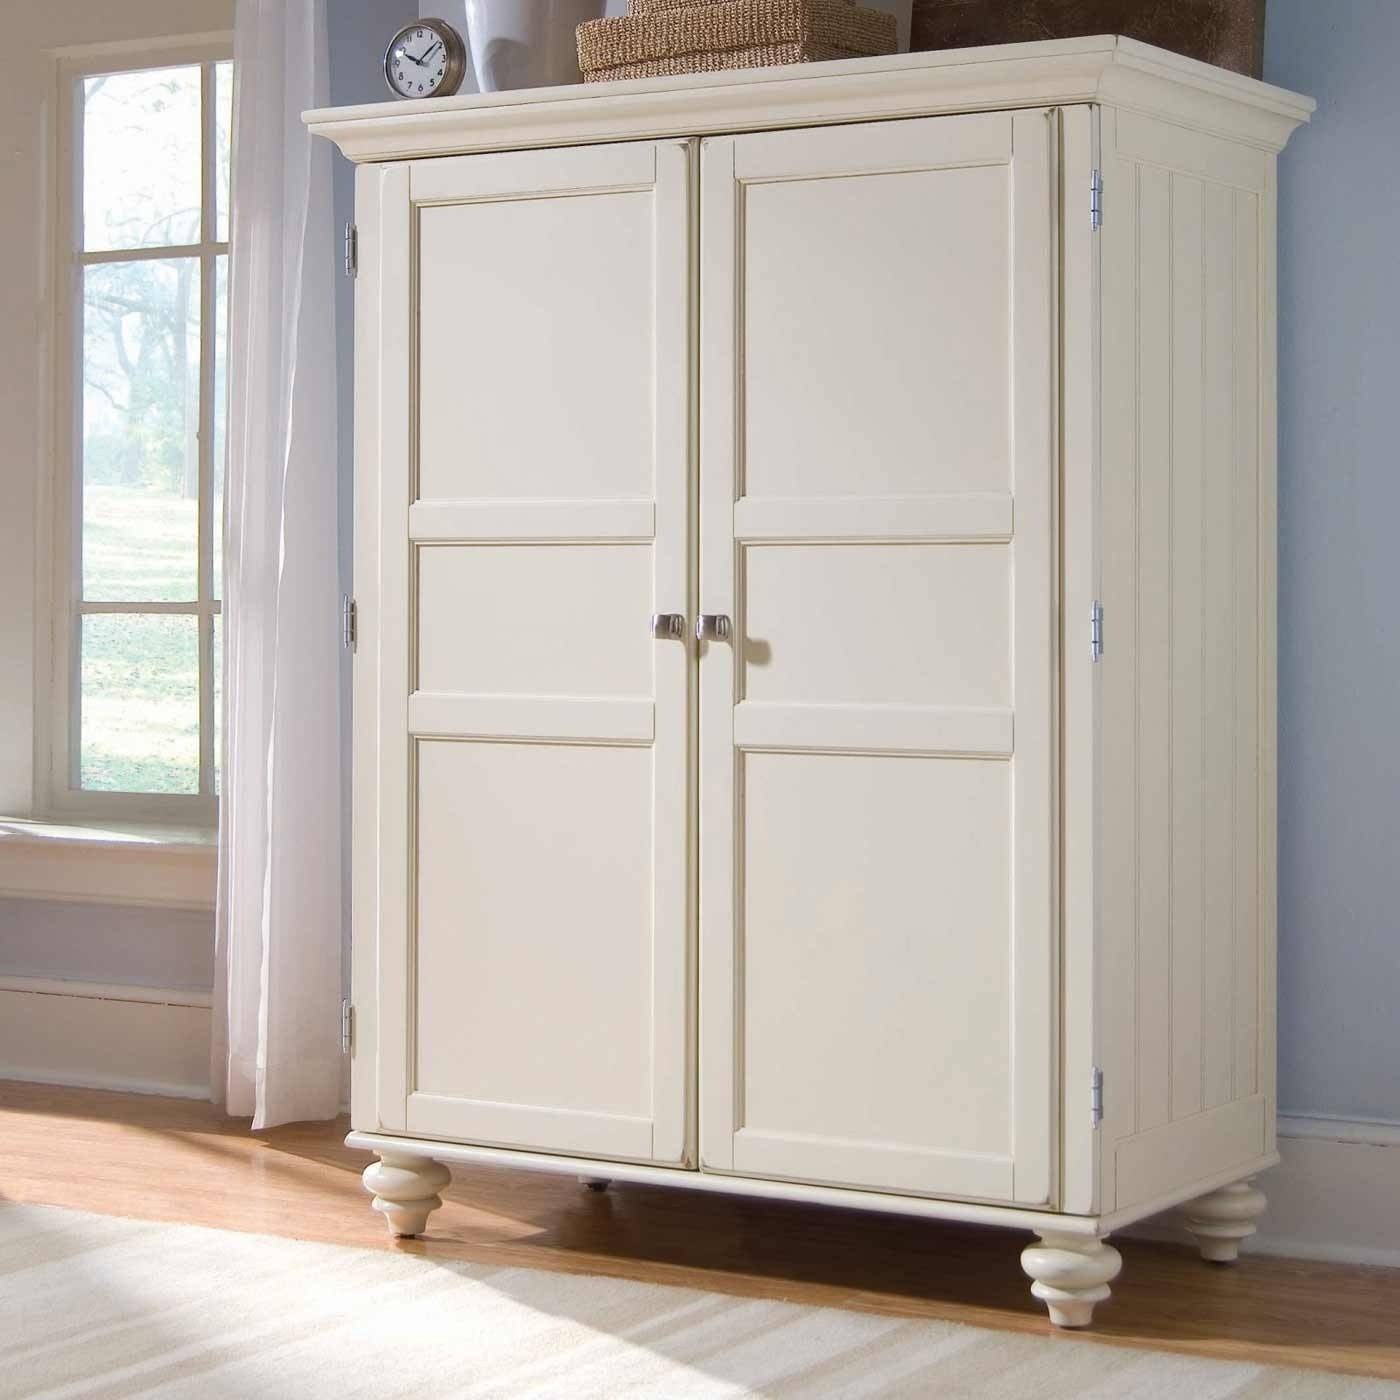 Furniture: Fancy Wardrobe Armoire For Wardrobe Organizer Idea within Wardrobes Cheap (Image 12 of 15)